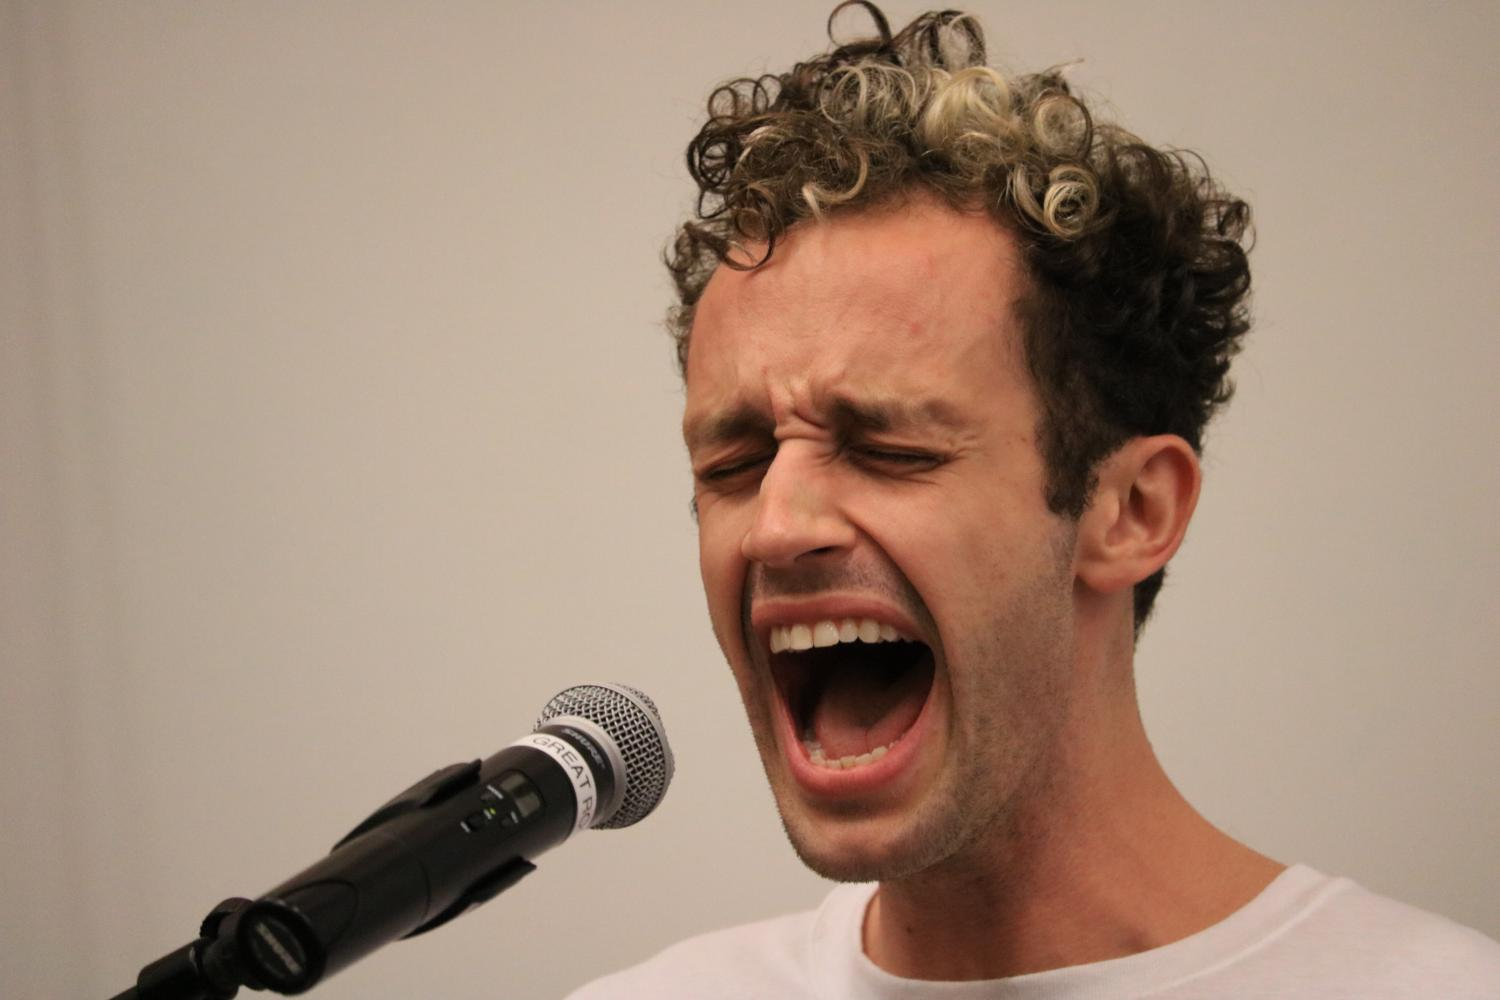 Wrabel sings into the microphone.